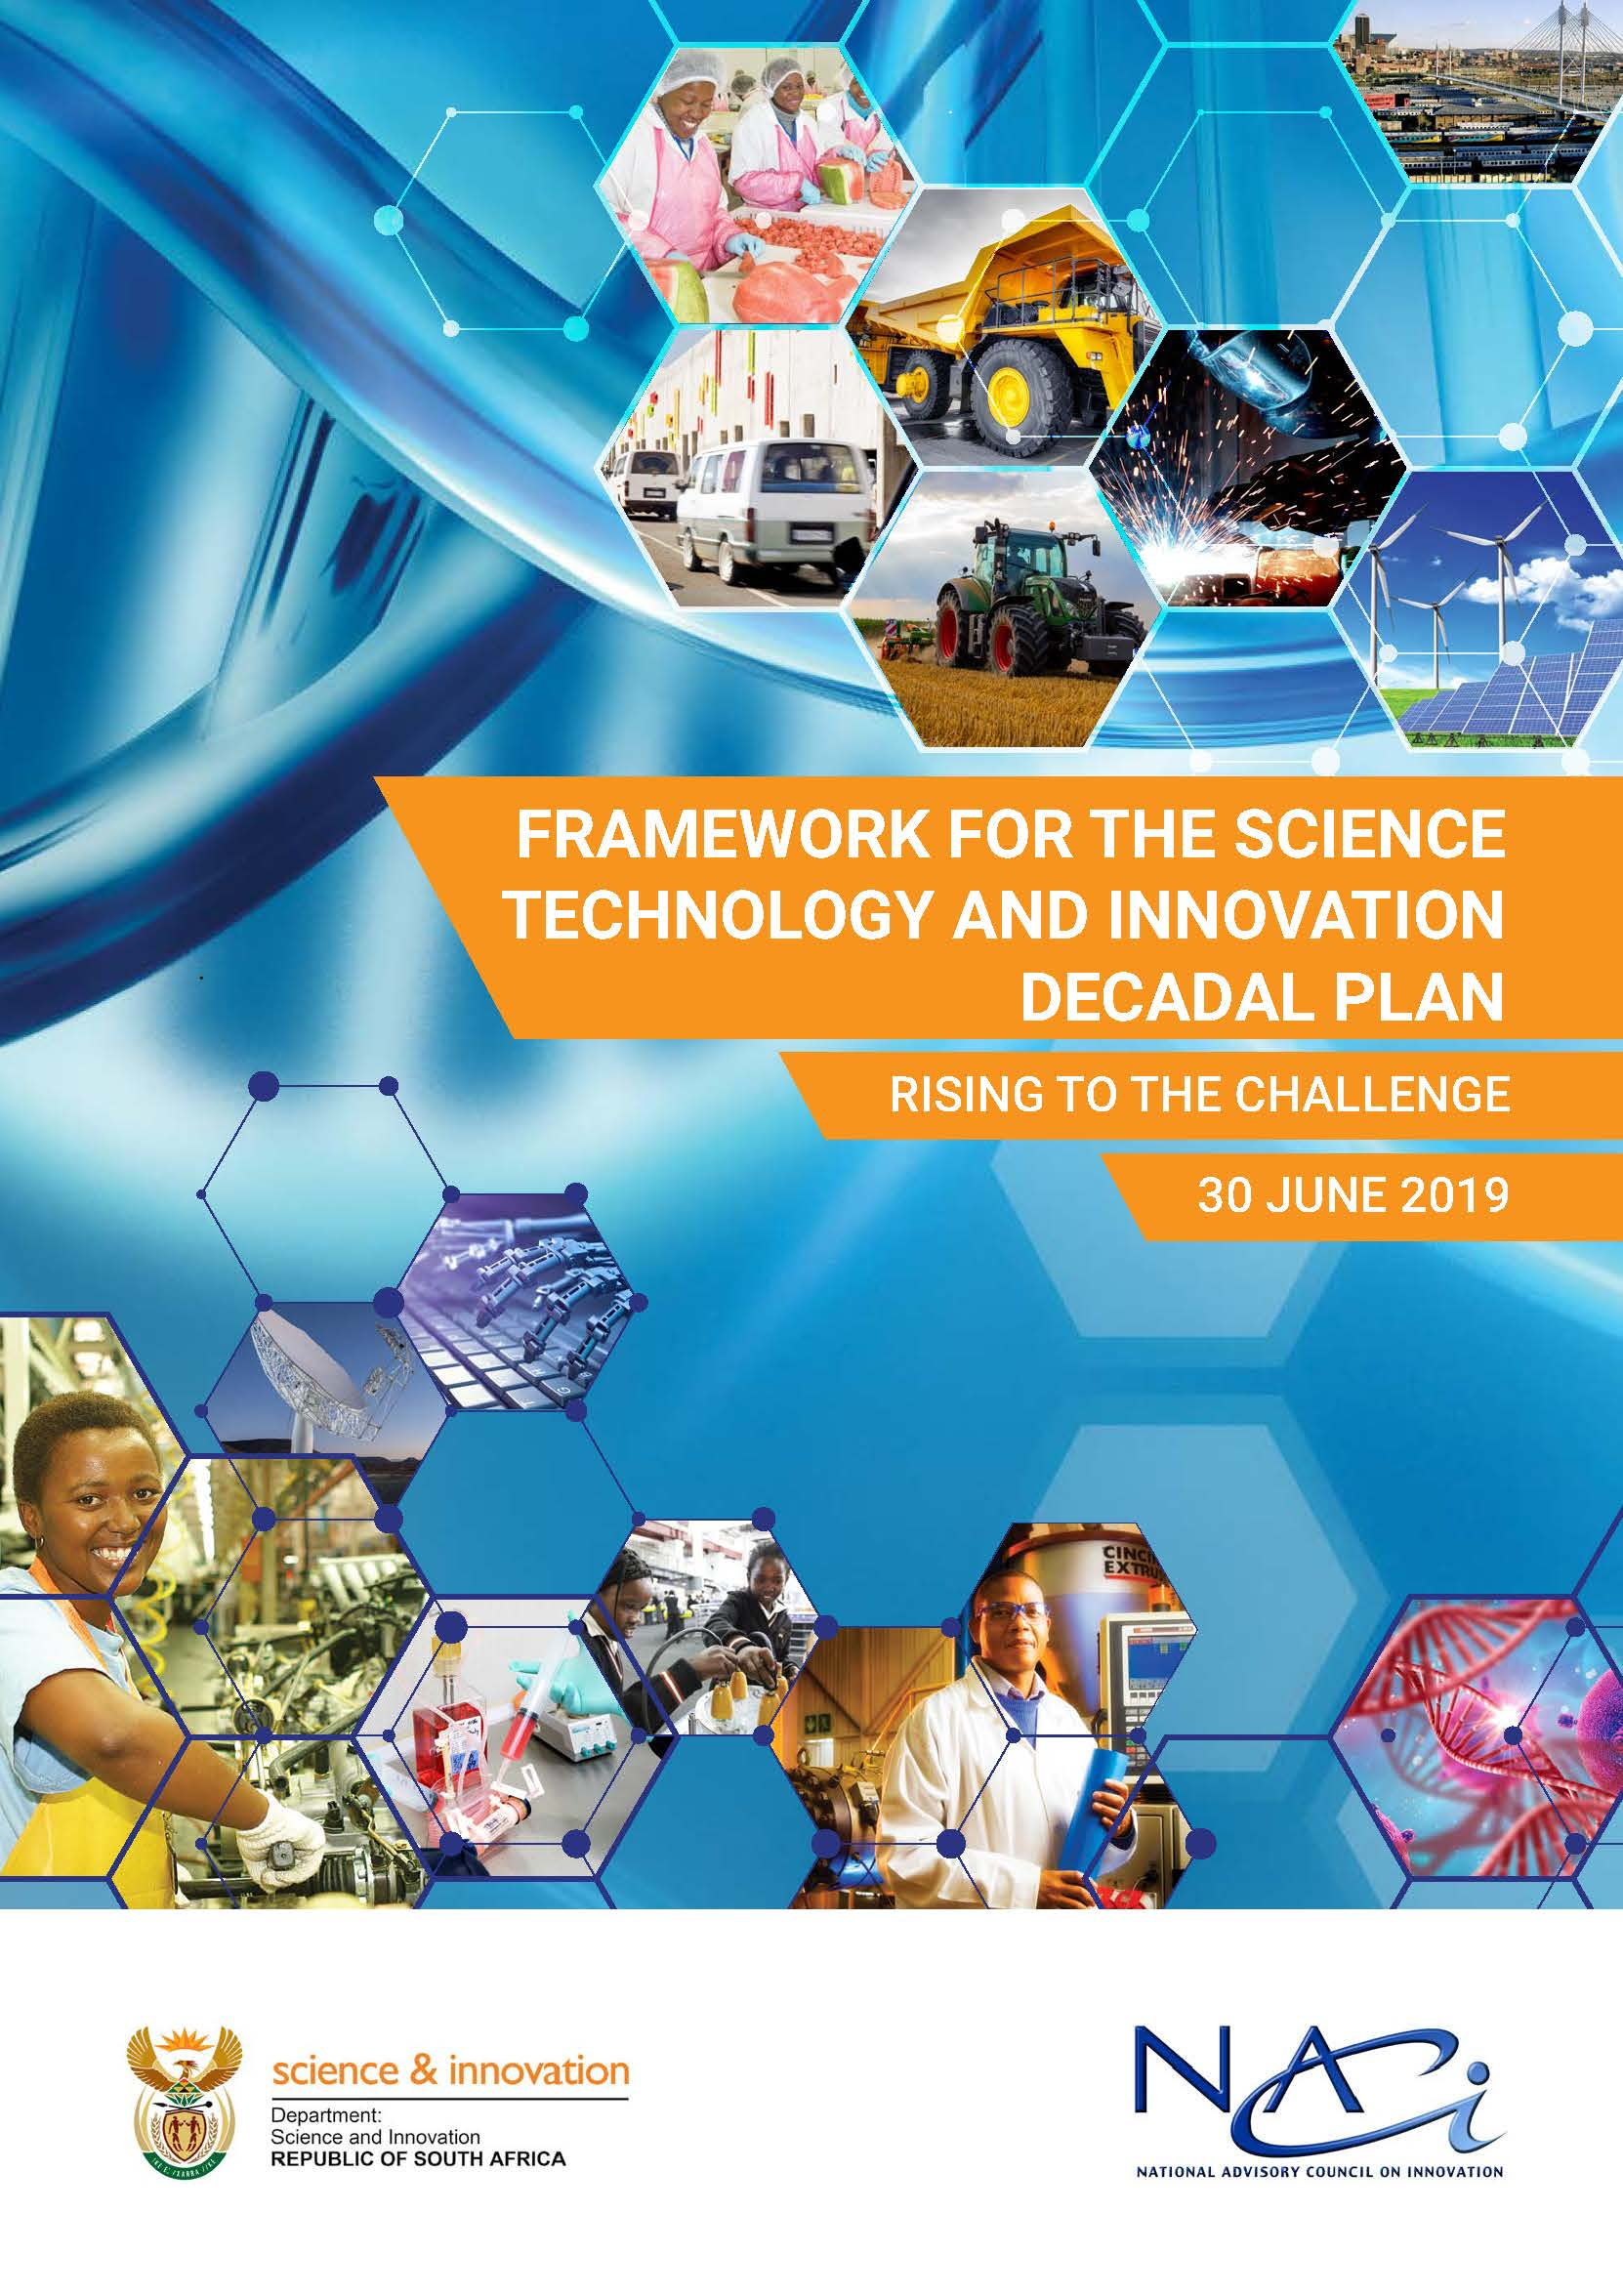 FRAMEWORK FOR THE DEVELOPMENT OF THE SCIENCE TECHNOLOGY AND INNOVATION DECADAL PLAN_jpg